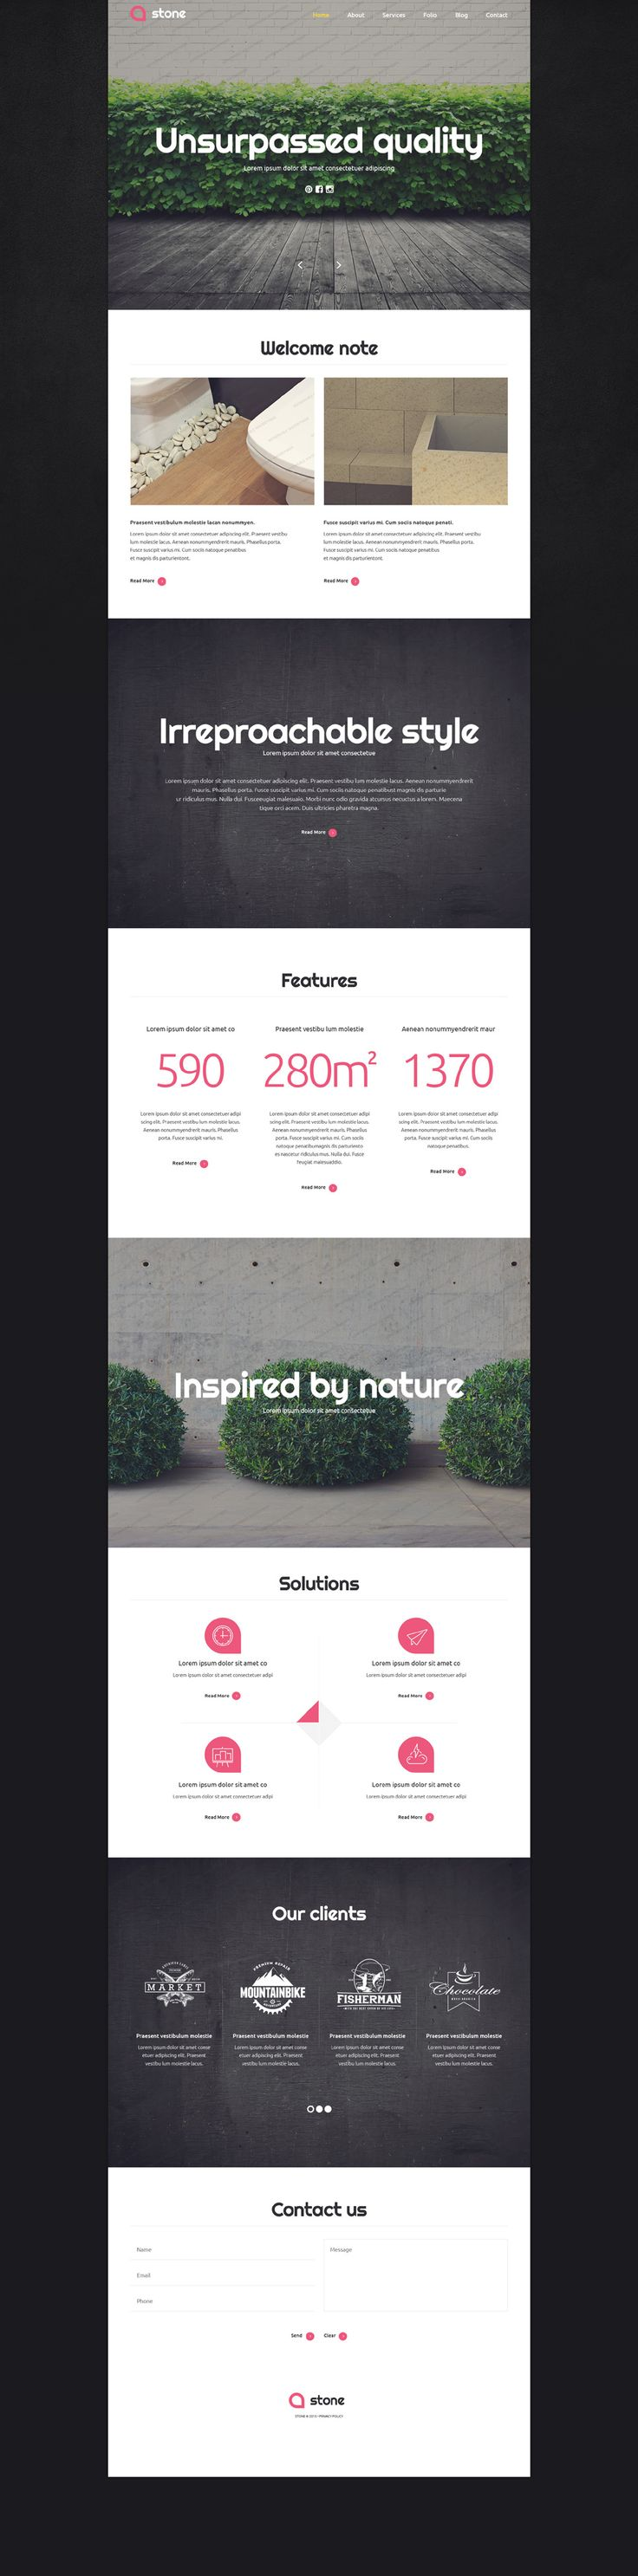 140 best FREE Website Templates images on Pinterest | Free website ...